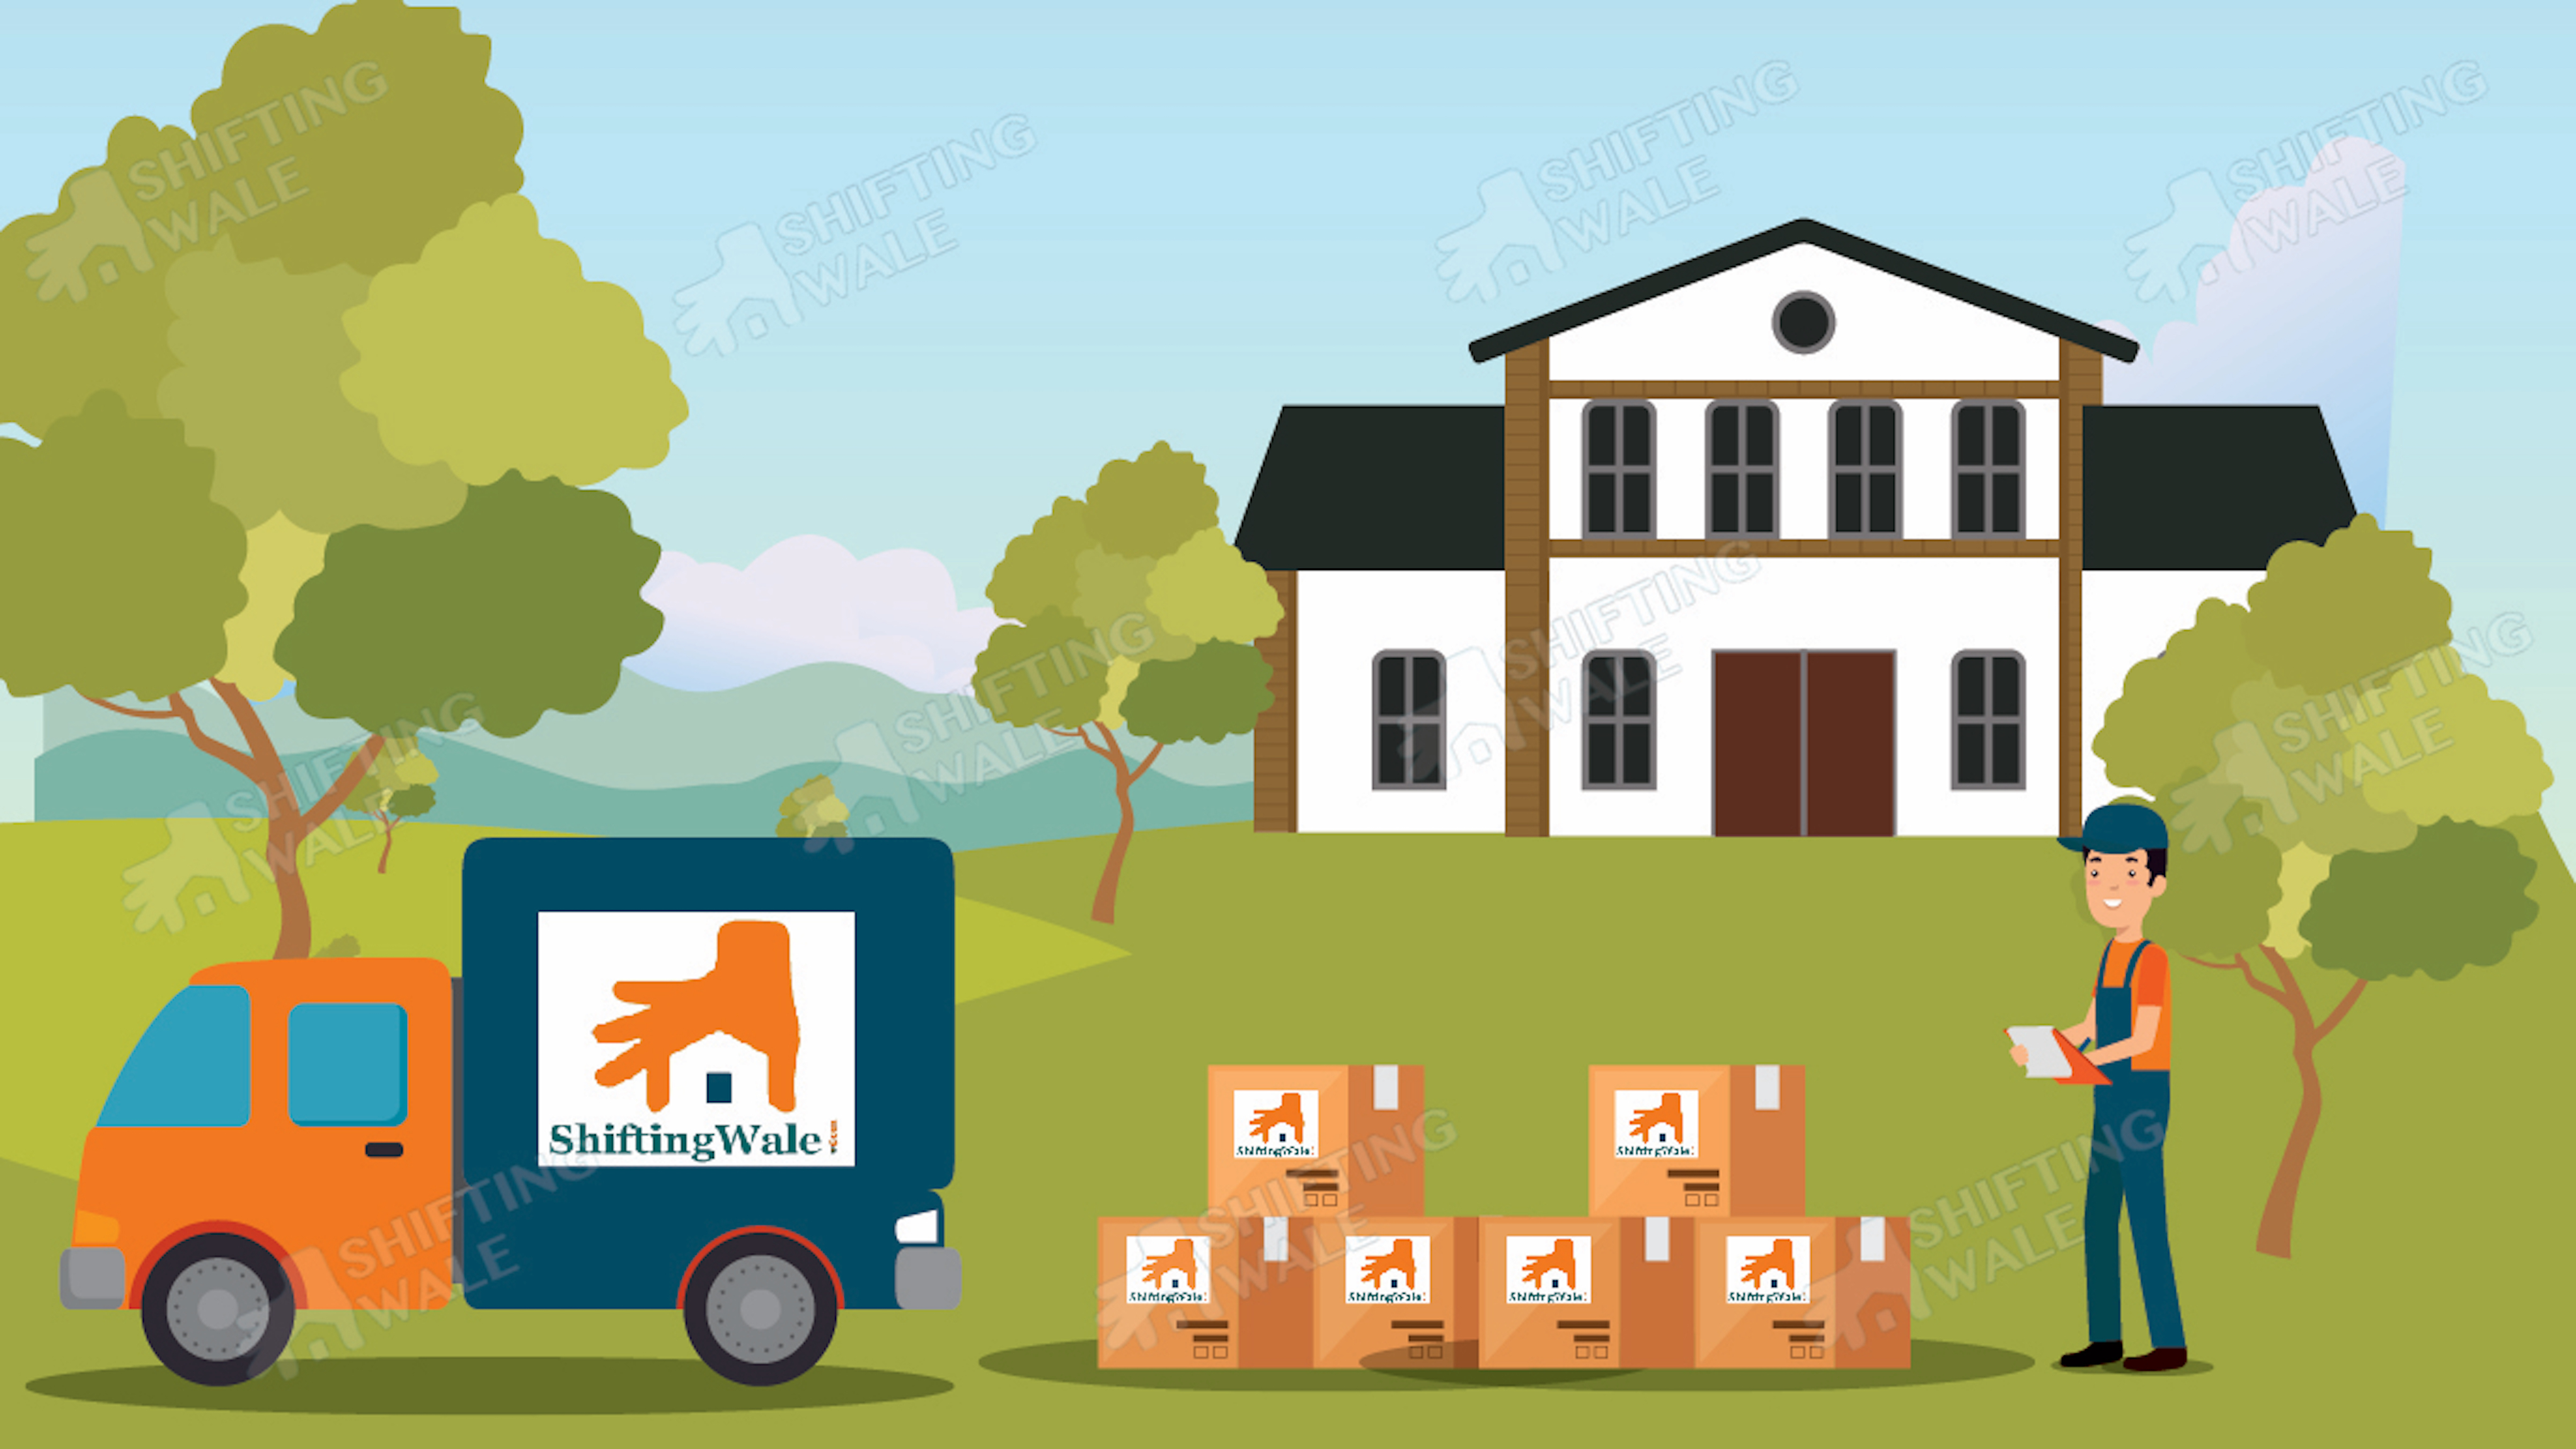 Kochi to Patna Trusted Packers and Movers Get Best Shifting